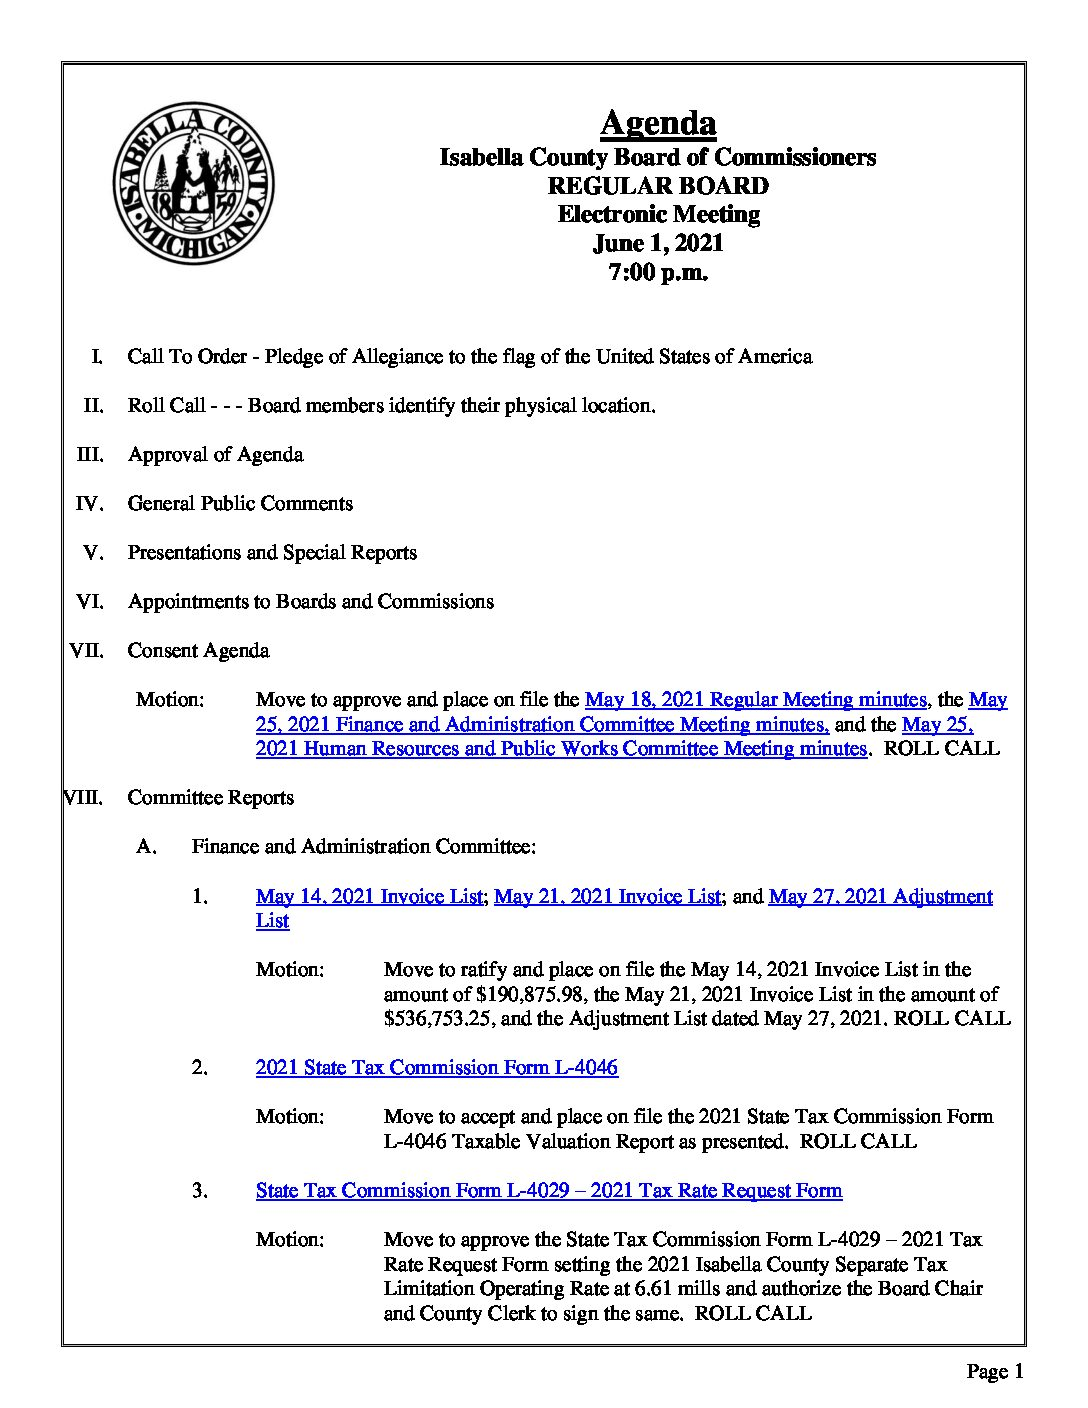 preview image of first page June 1, 2021 Agenda